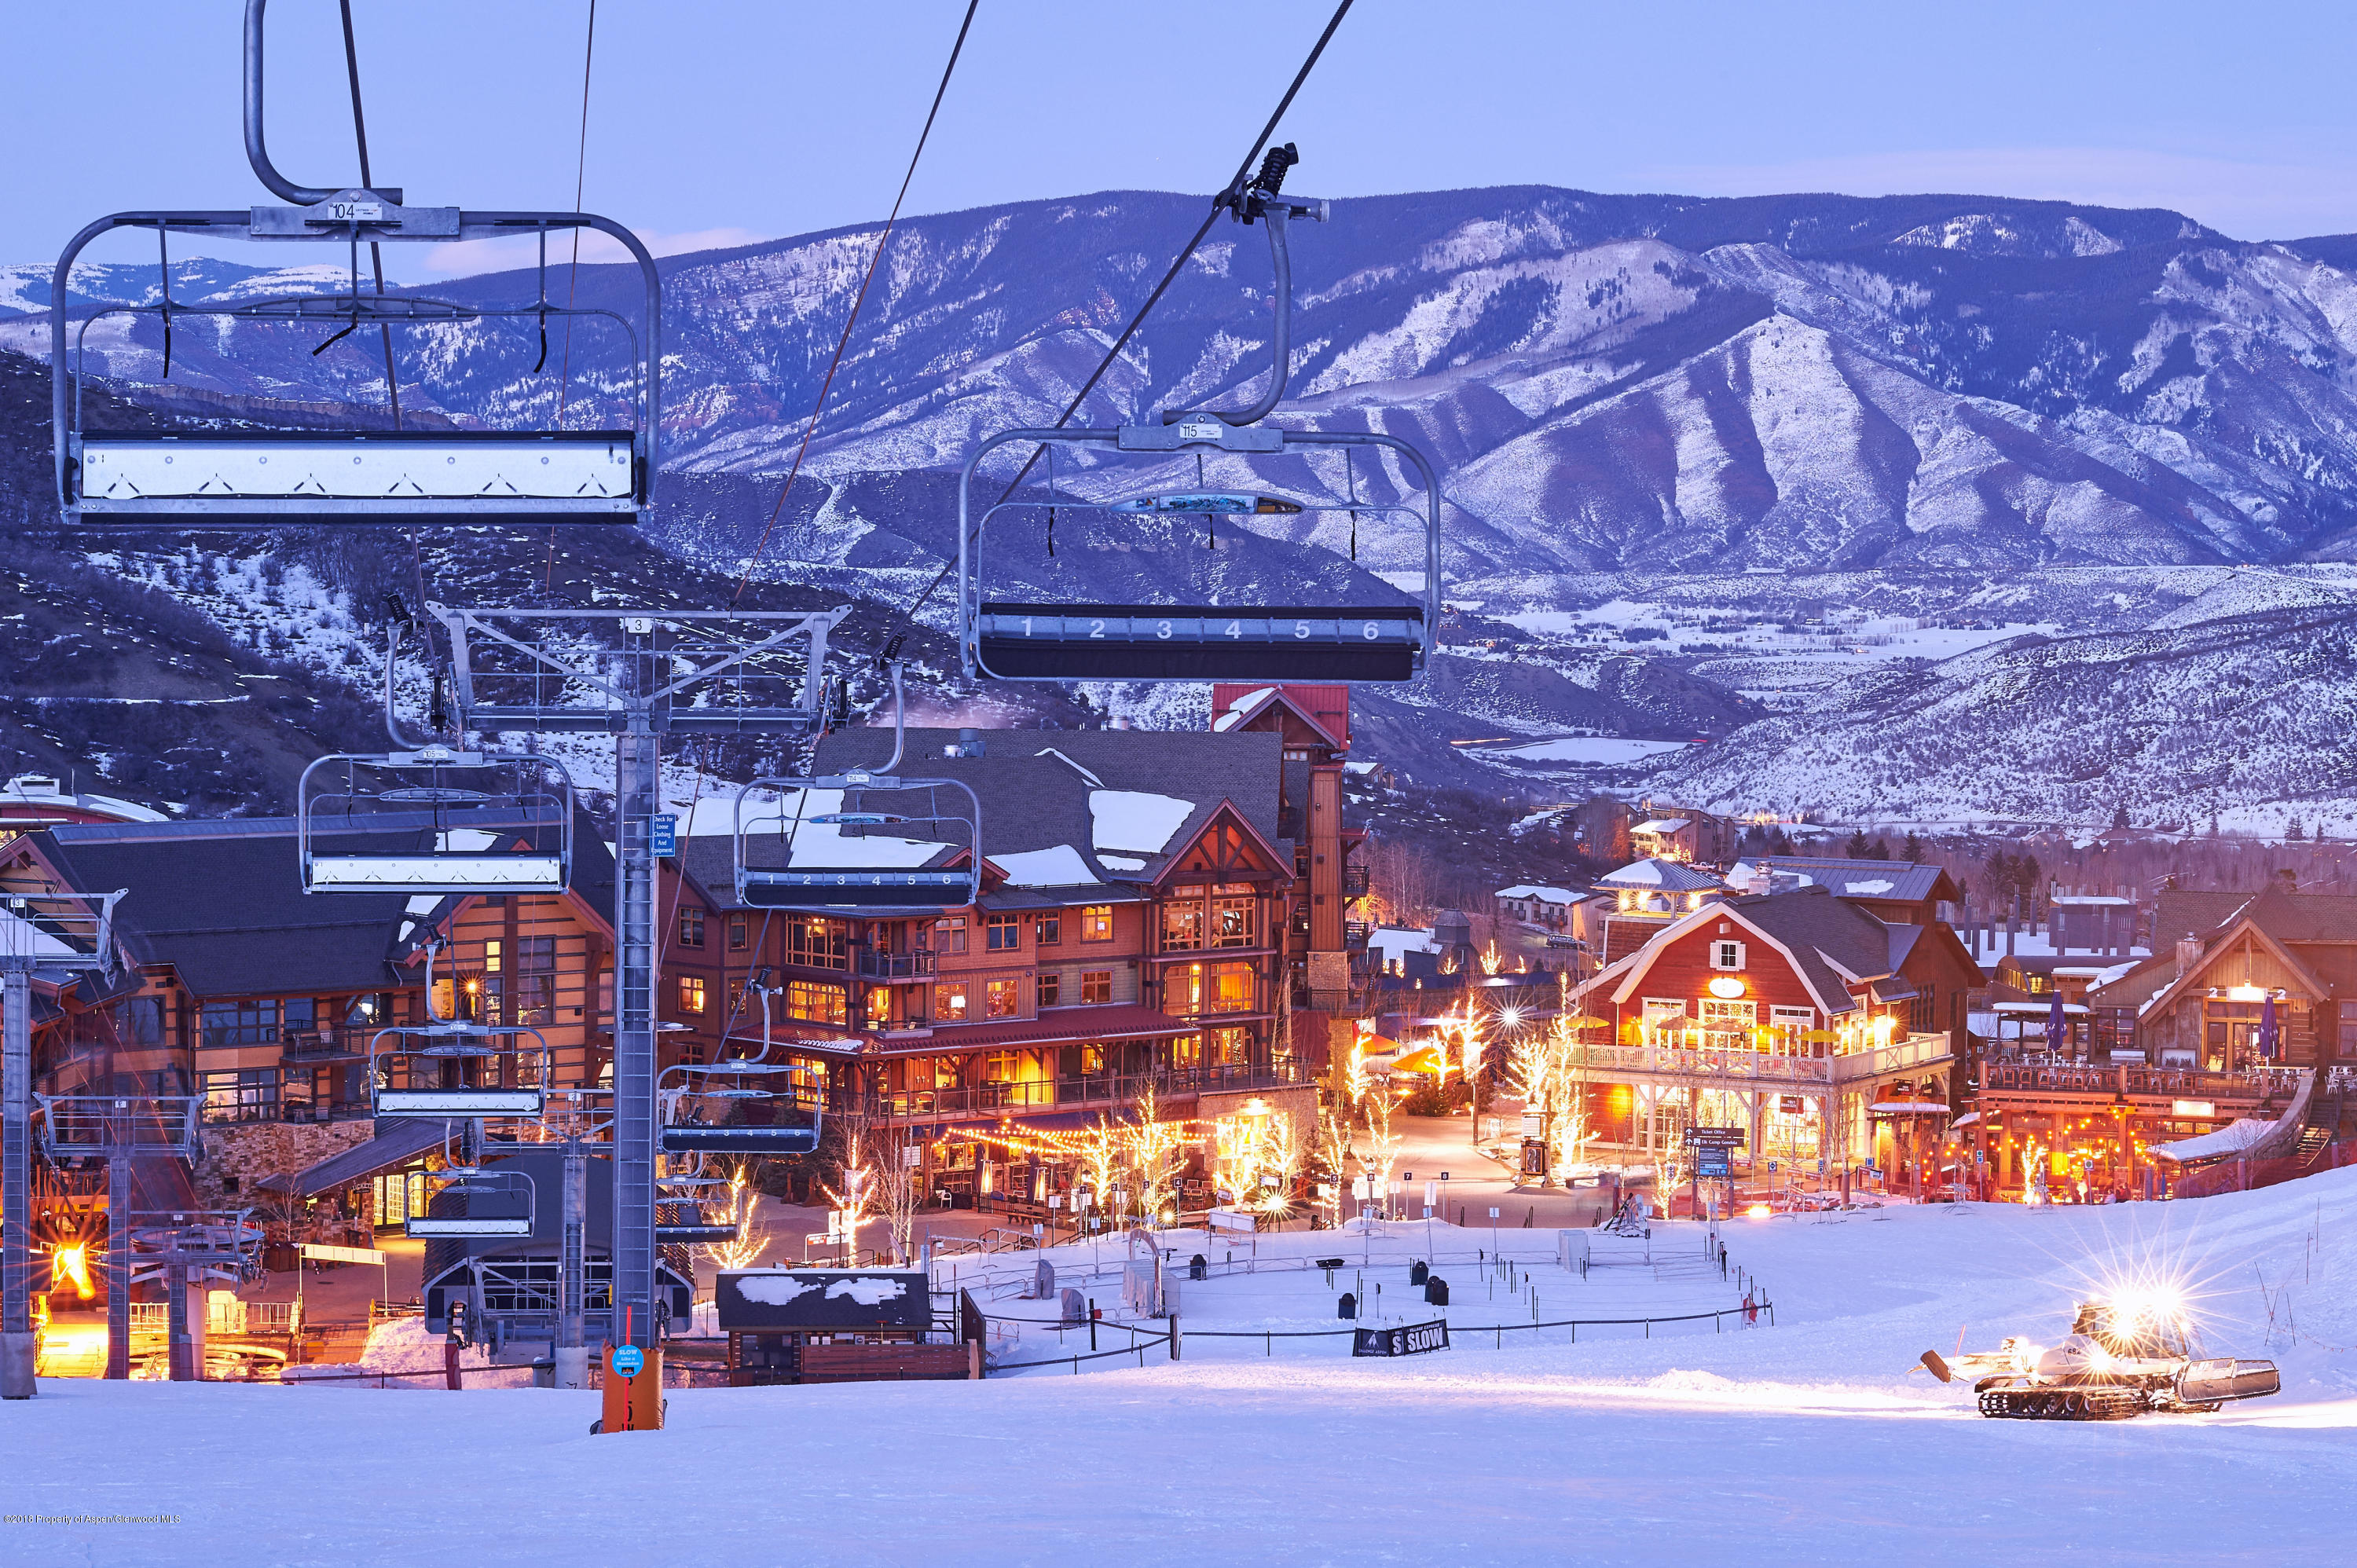 120 Carriage Way, #2307 - Snowmass Village, Colorado